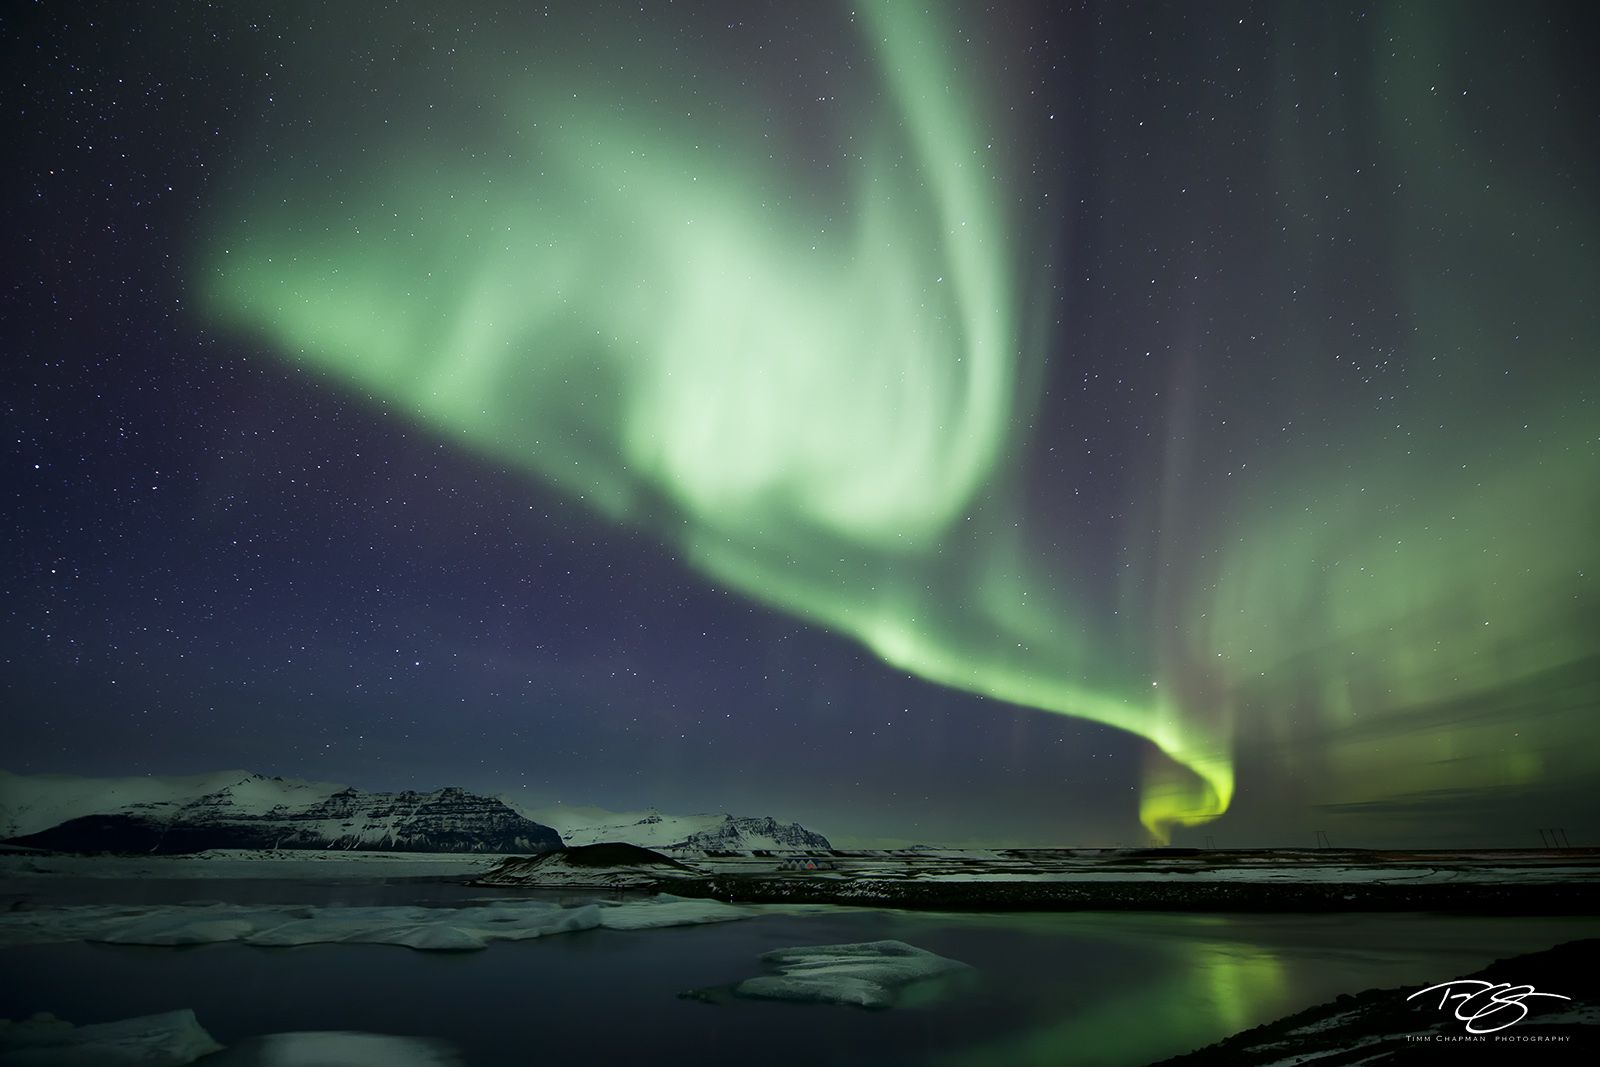 iceland; aurora; borealis; ribbon of light; jokulsarlon; Jökulsárlón; glacier lagoon; mountains; reflection; water; green; violet; stars; northern lights; spirit; coronal mass ejection; solar flare; e